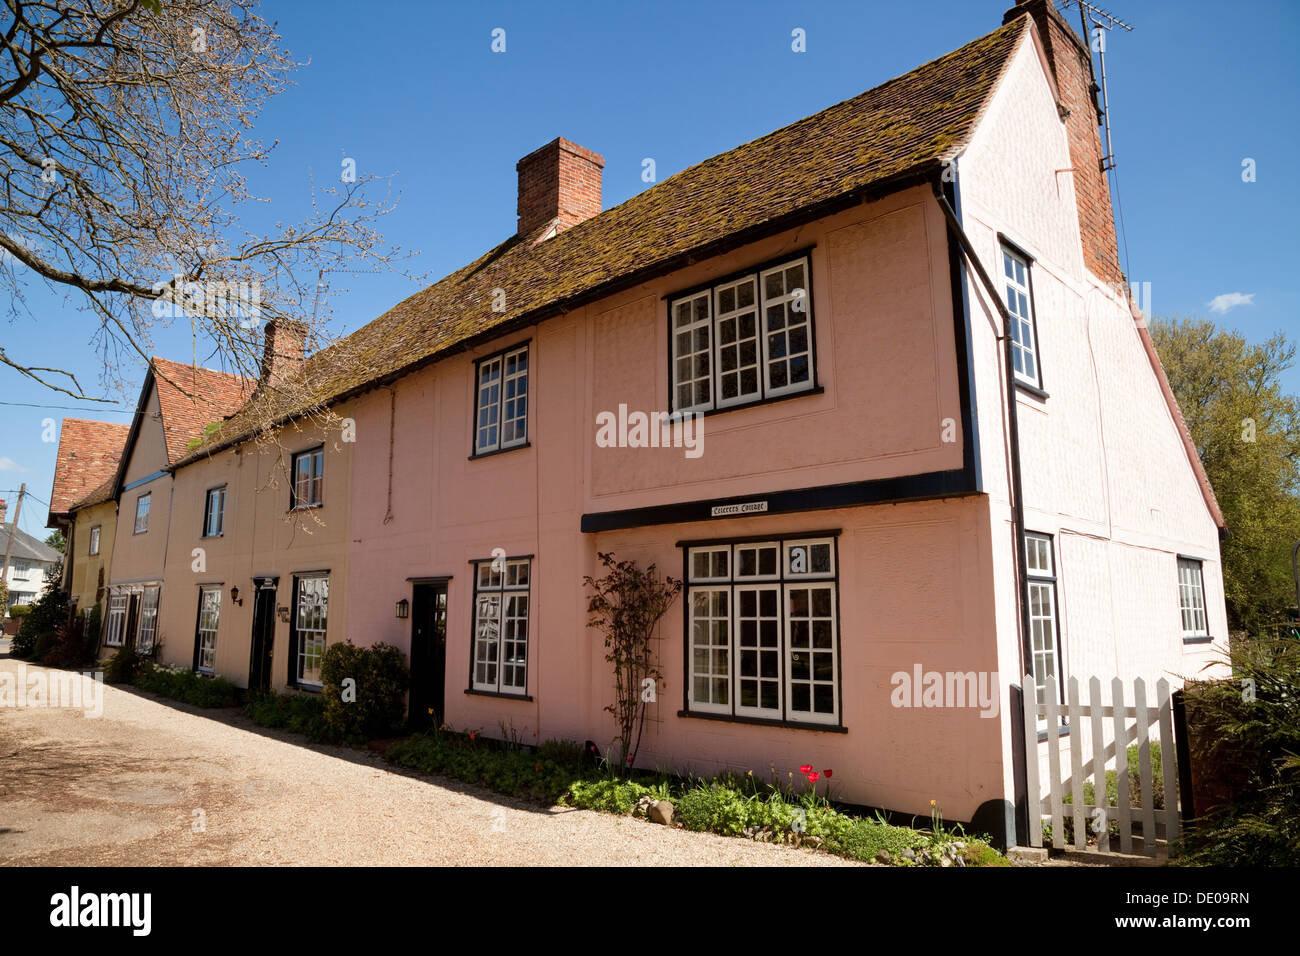 Traditional pink painted terraced houses in the village of Stoke By Clare, Suffolk East Anglia, England UK - Stock Image